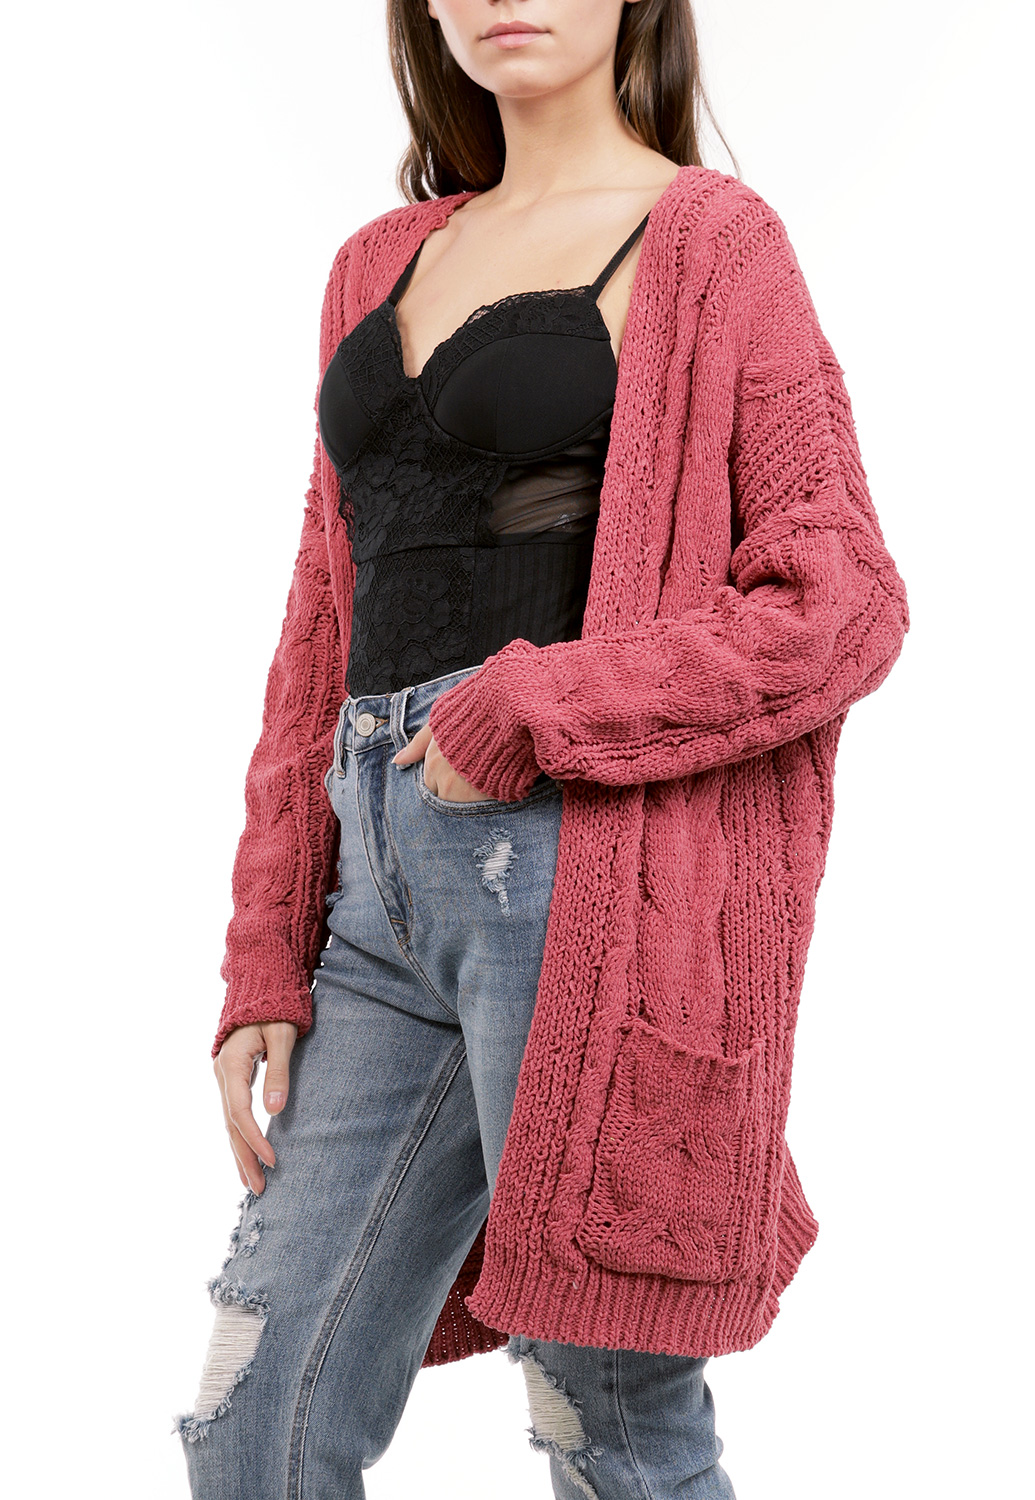 Crochet Knit Open Cardigan